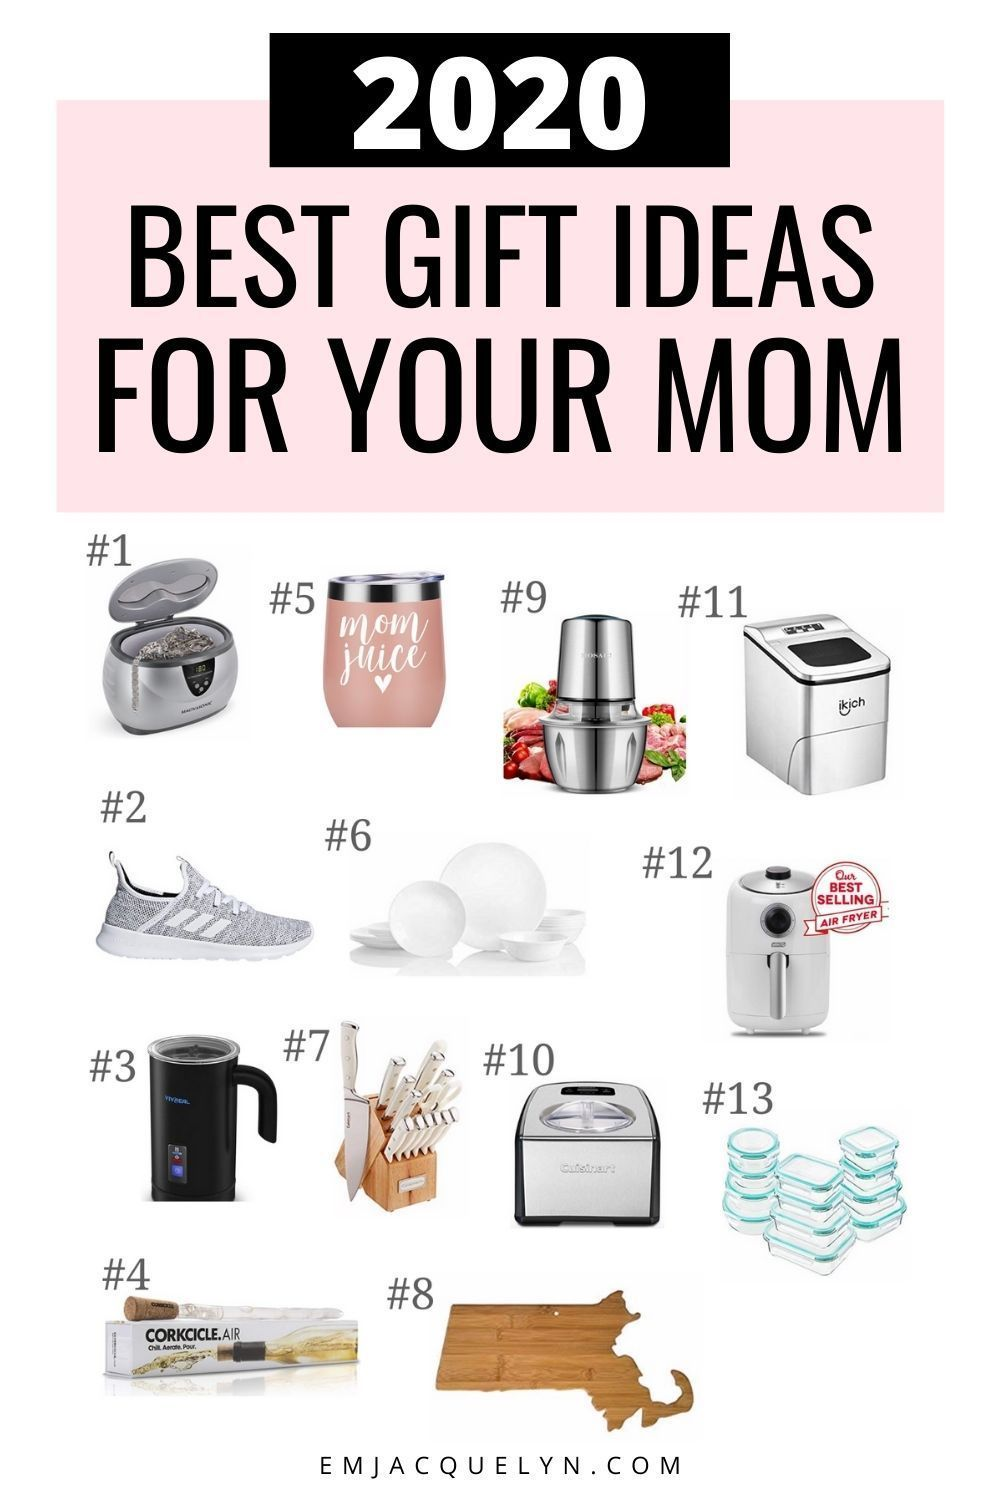 Amazon Gifts For Mom Mil Emjacquelyn Boyfriends Mom Gifts Best Christmas Gifts Christmas Gifts For Boyfriend